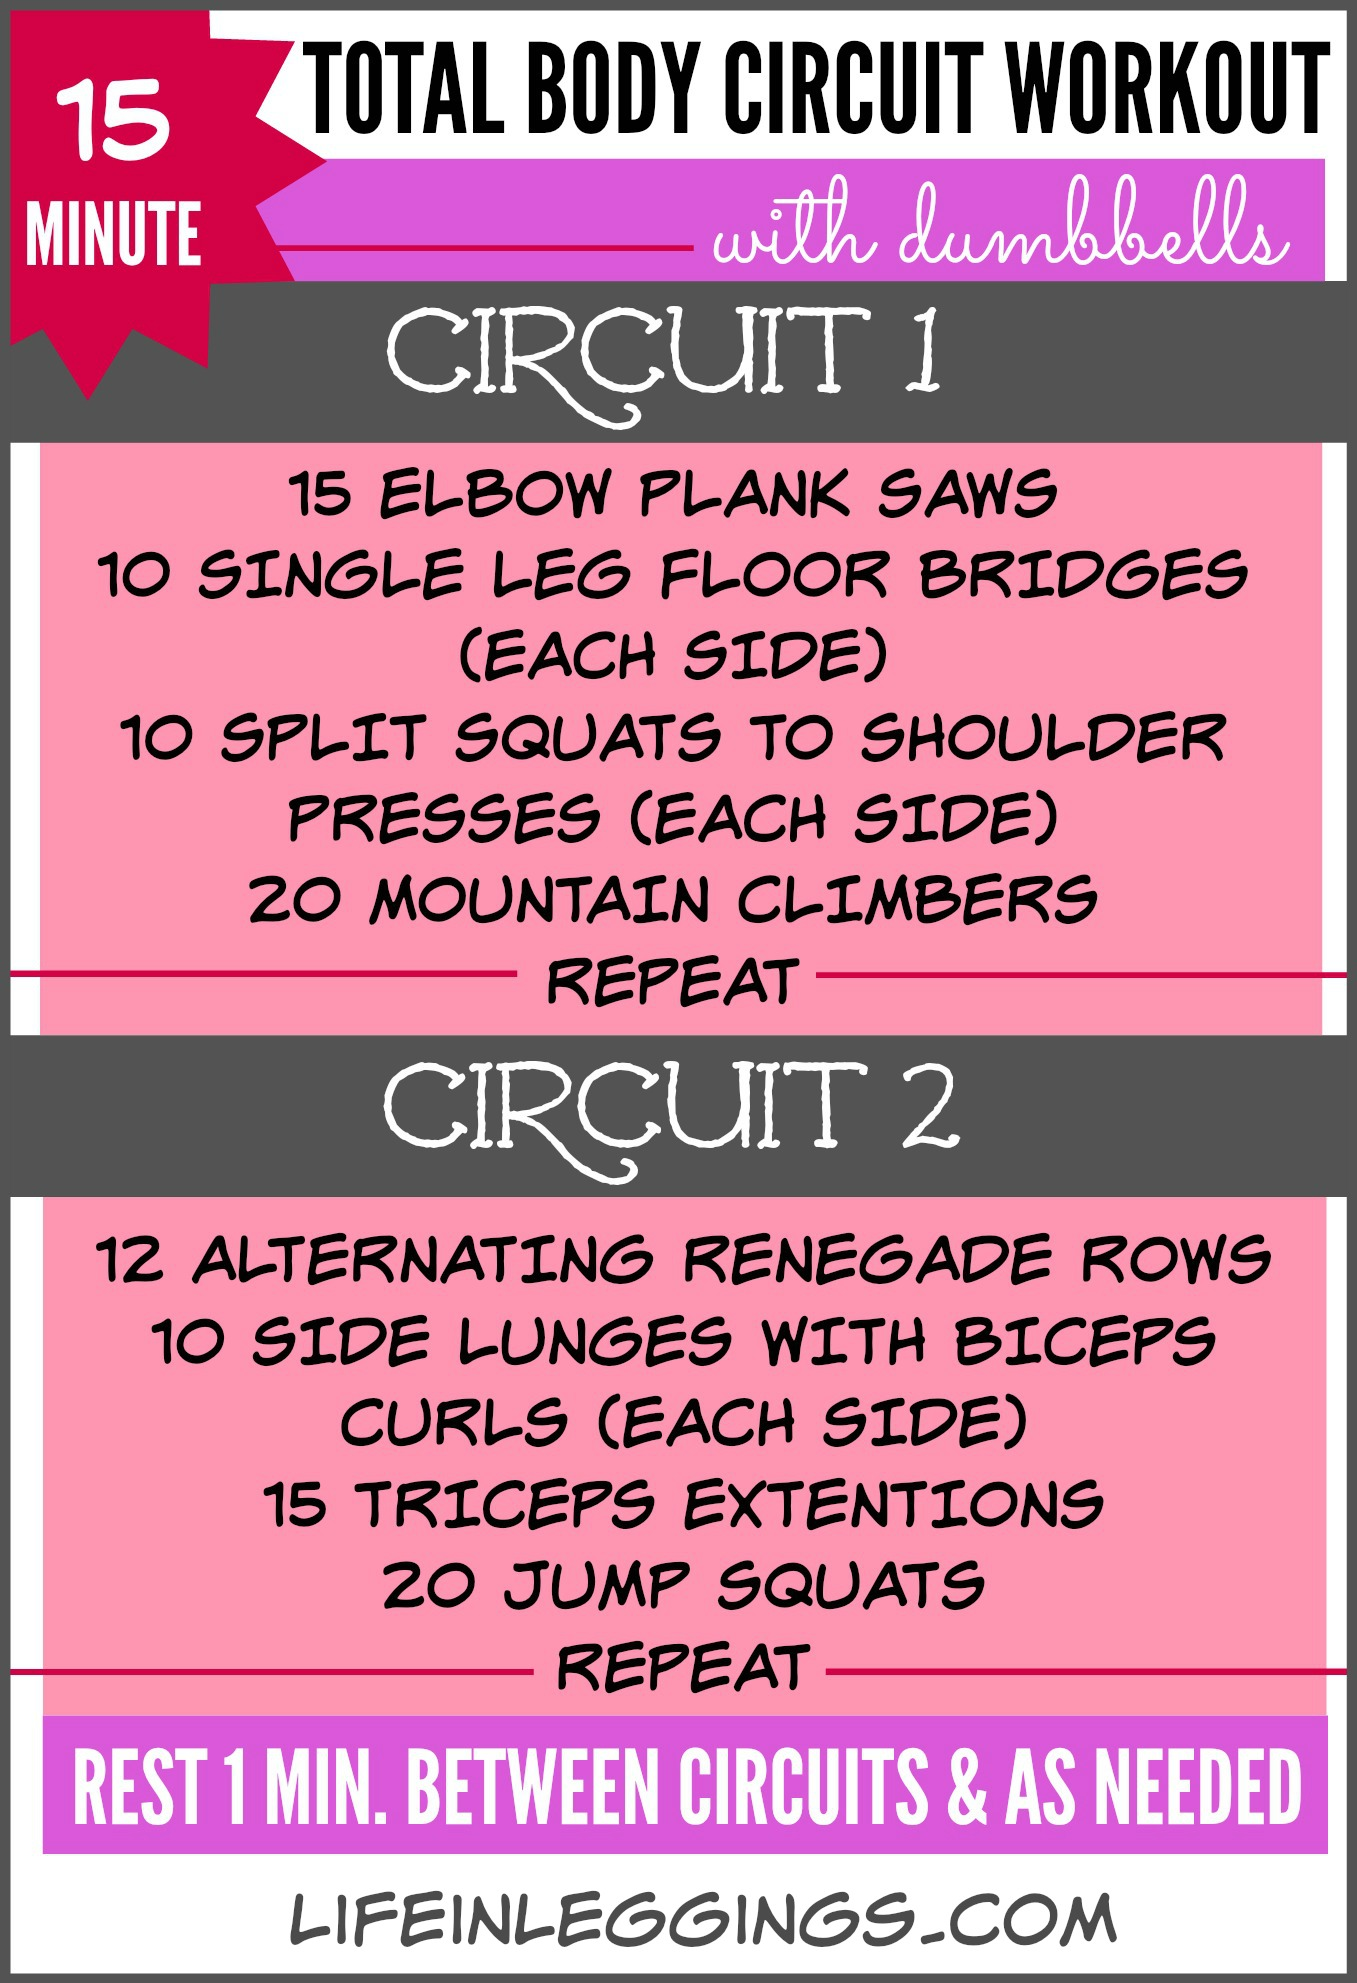 15 Minute Total Body Circuit Workout